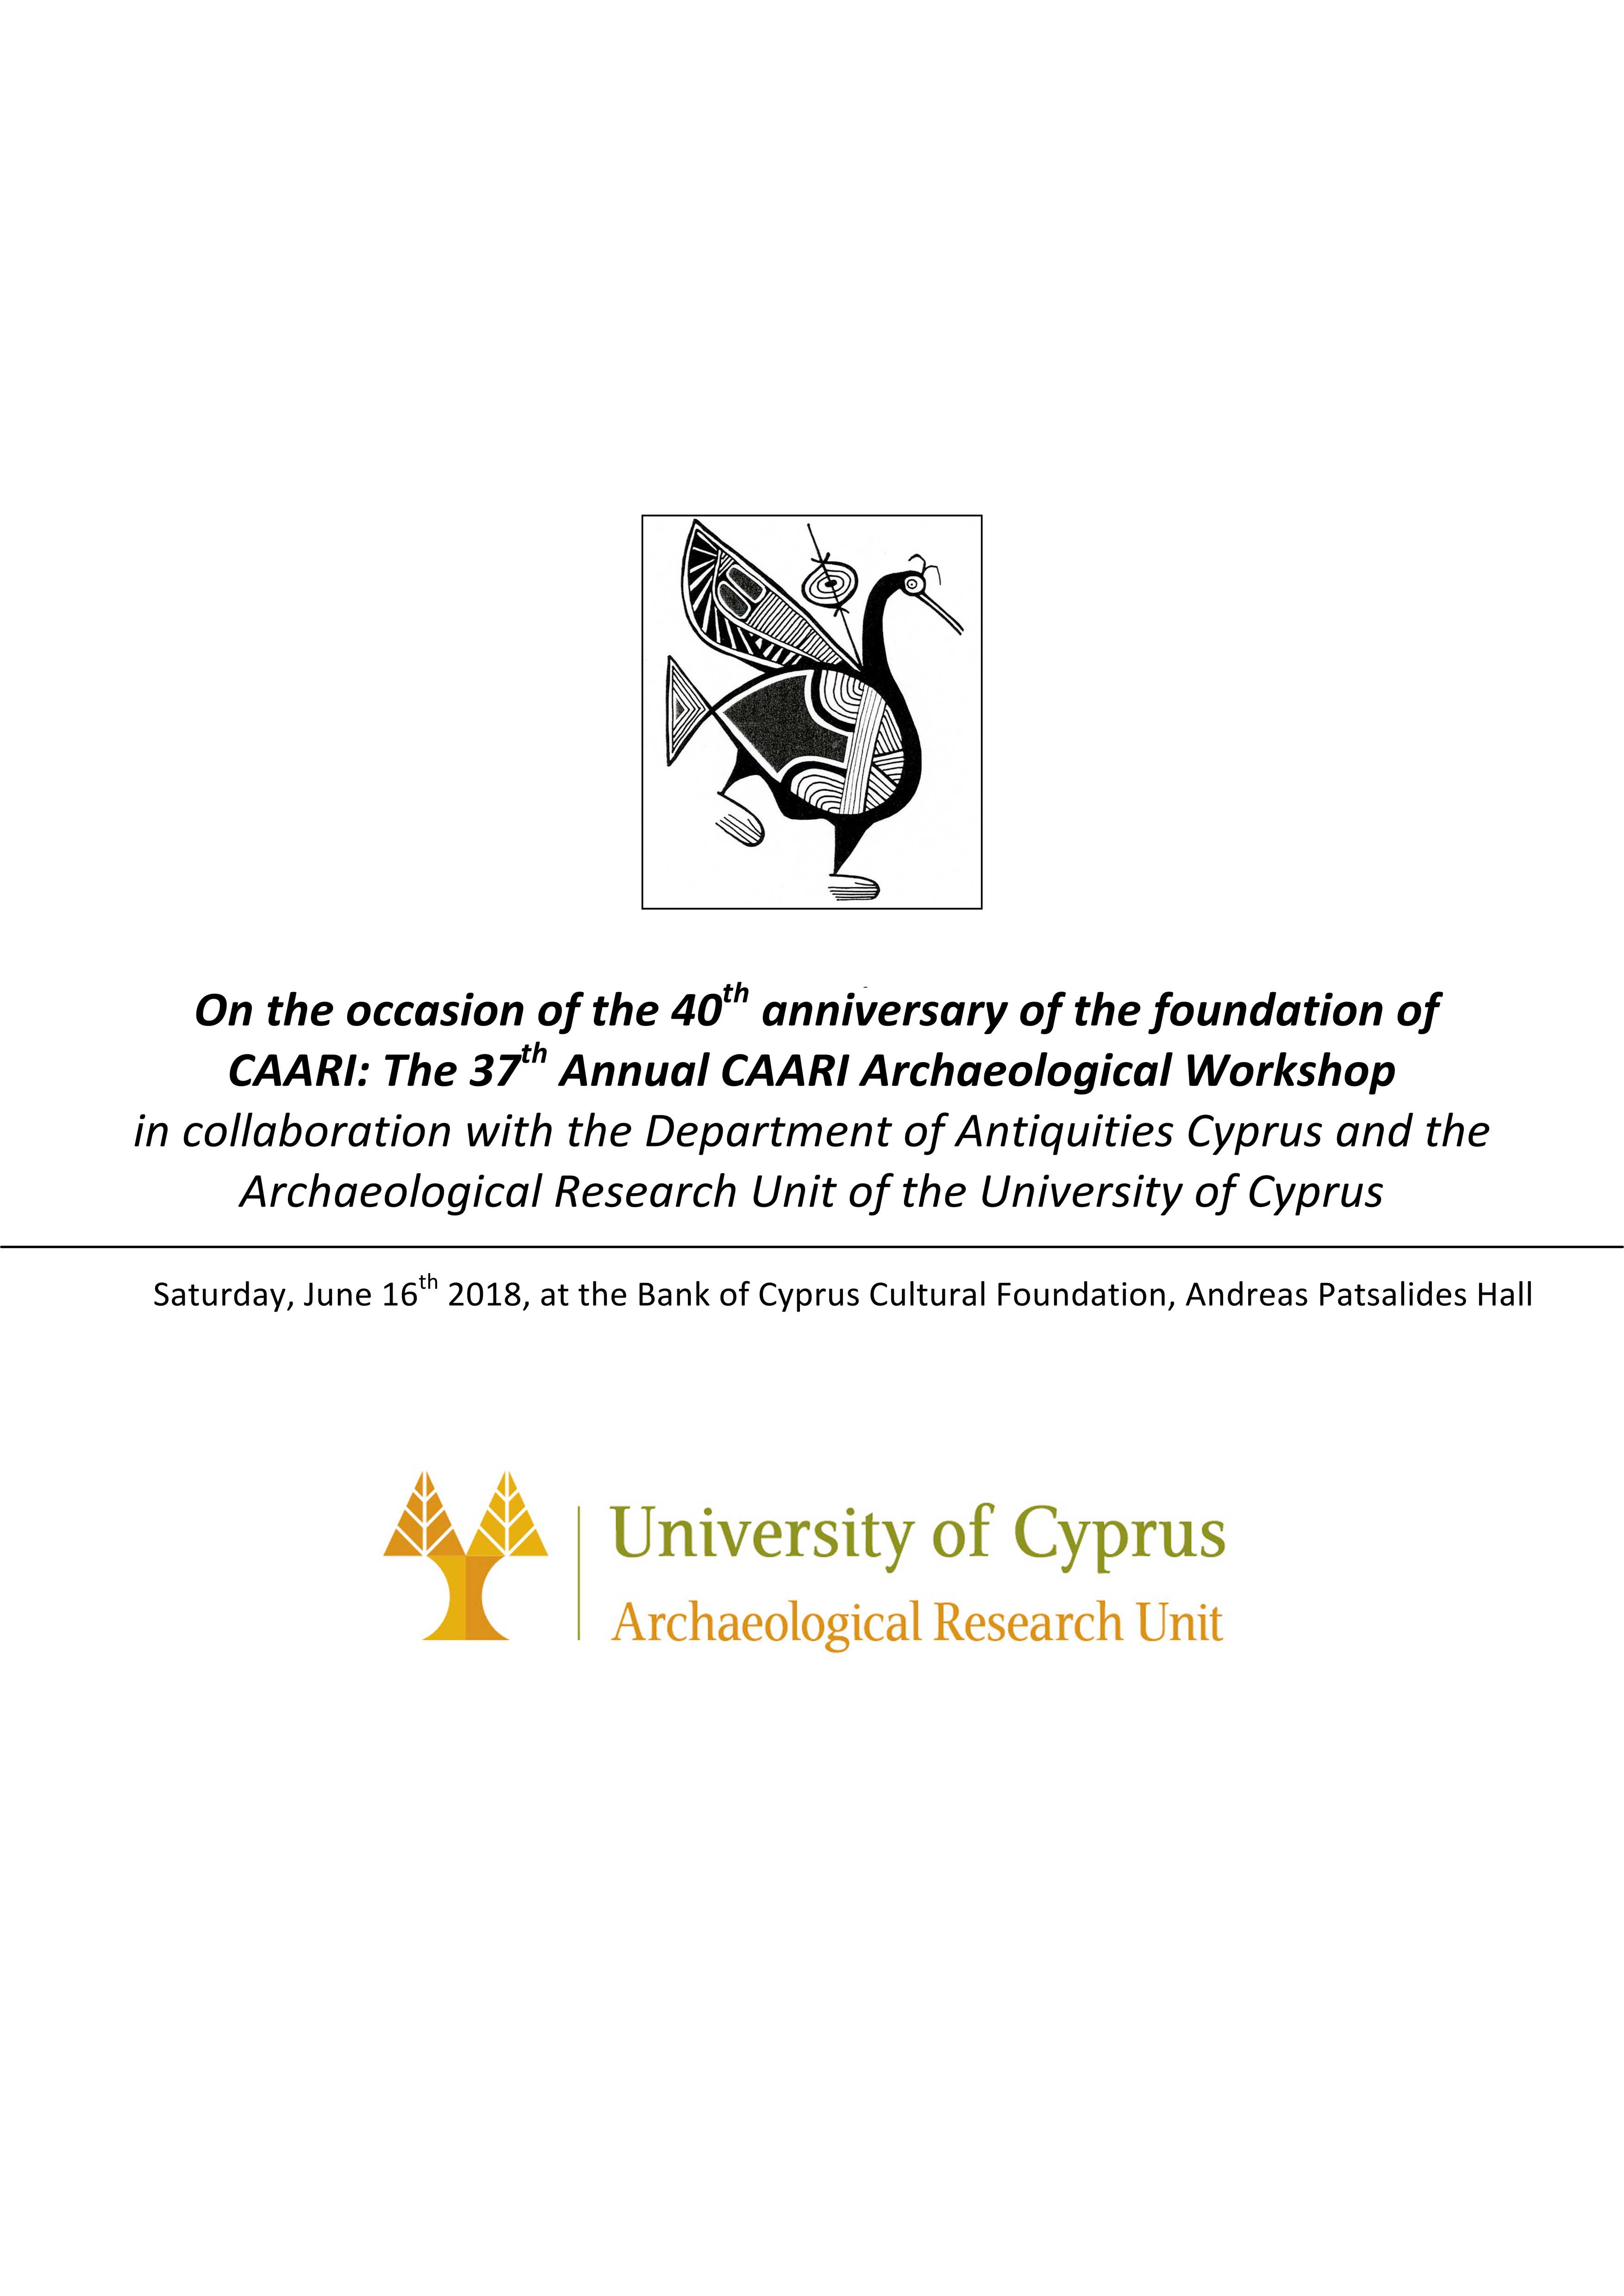 40th CAARI meeting